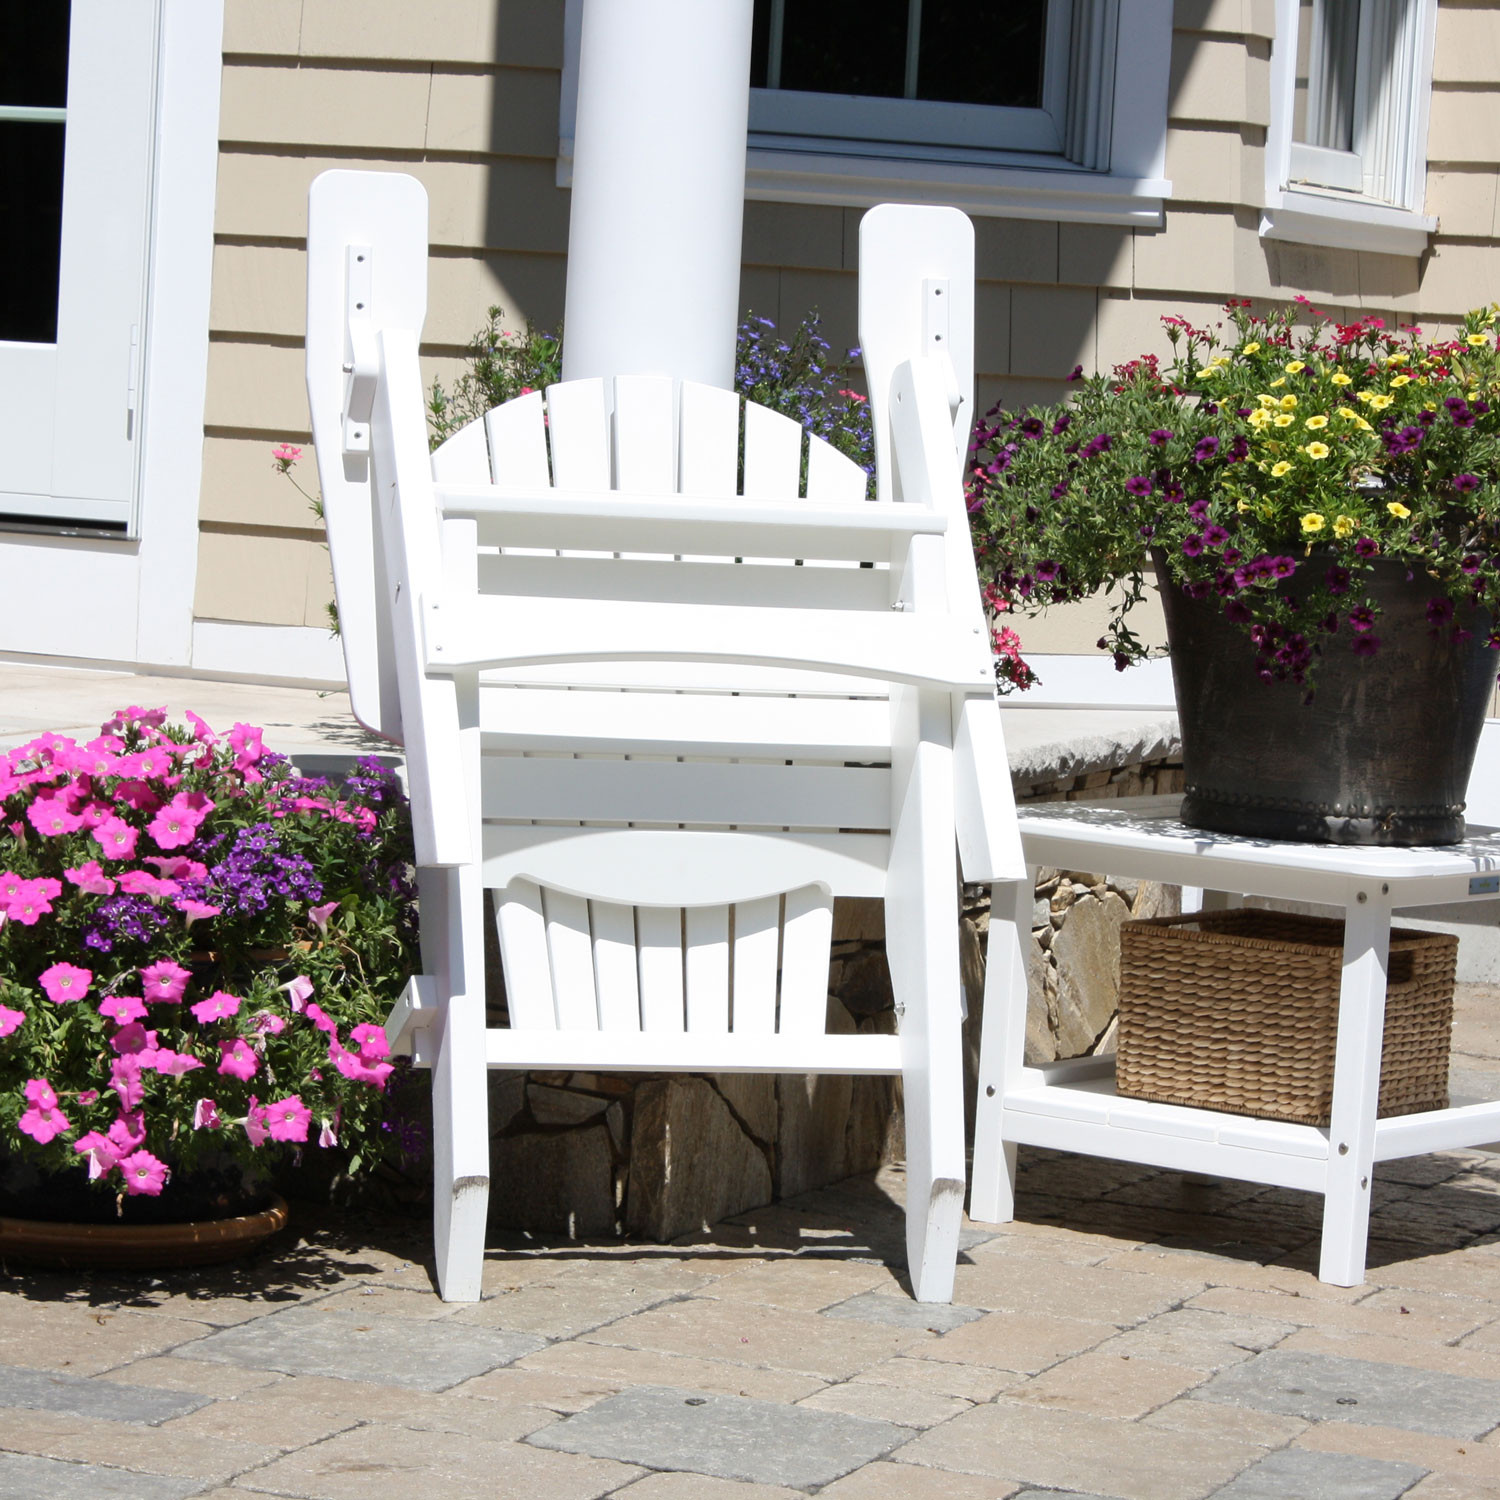 Malibu Outdoor Hyannis Folding Adirondack Chair - Malibu outdoor furniture